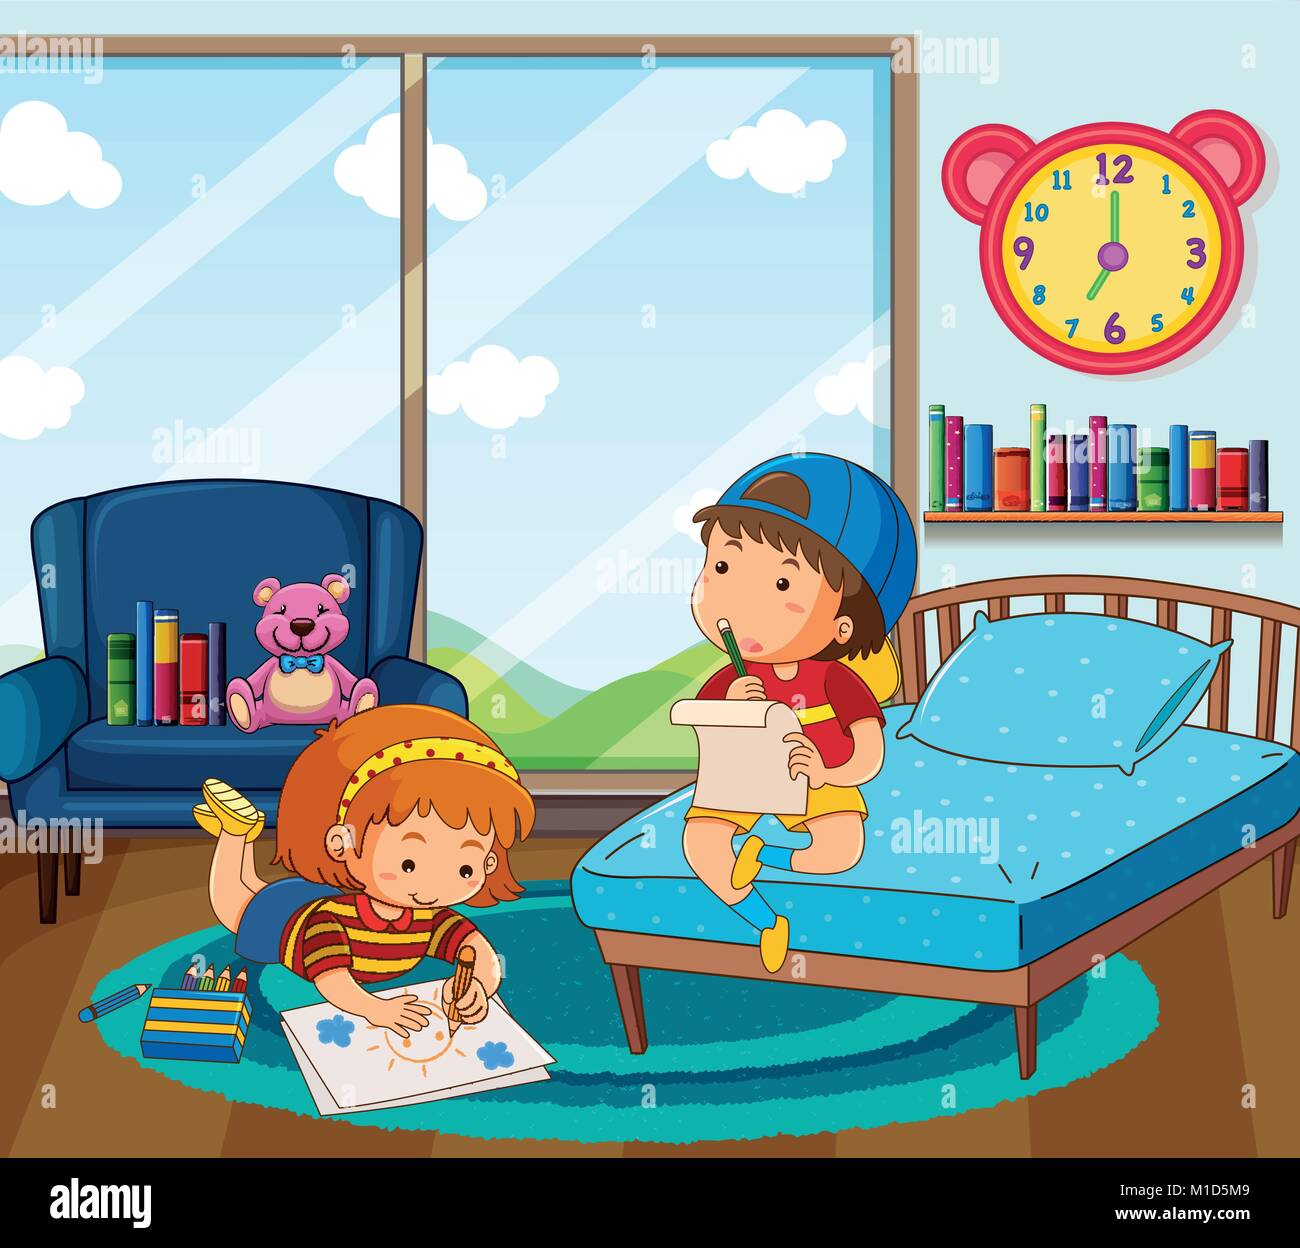 Boy And Girl Drawing Picture In Bedroom Illustration